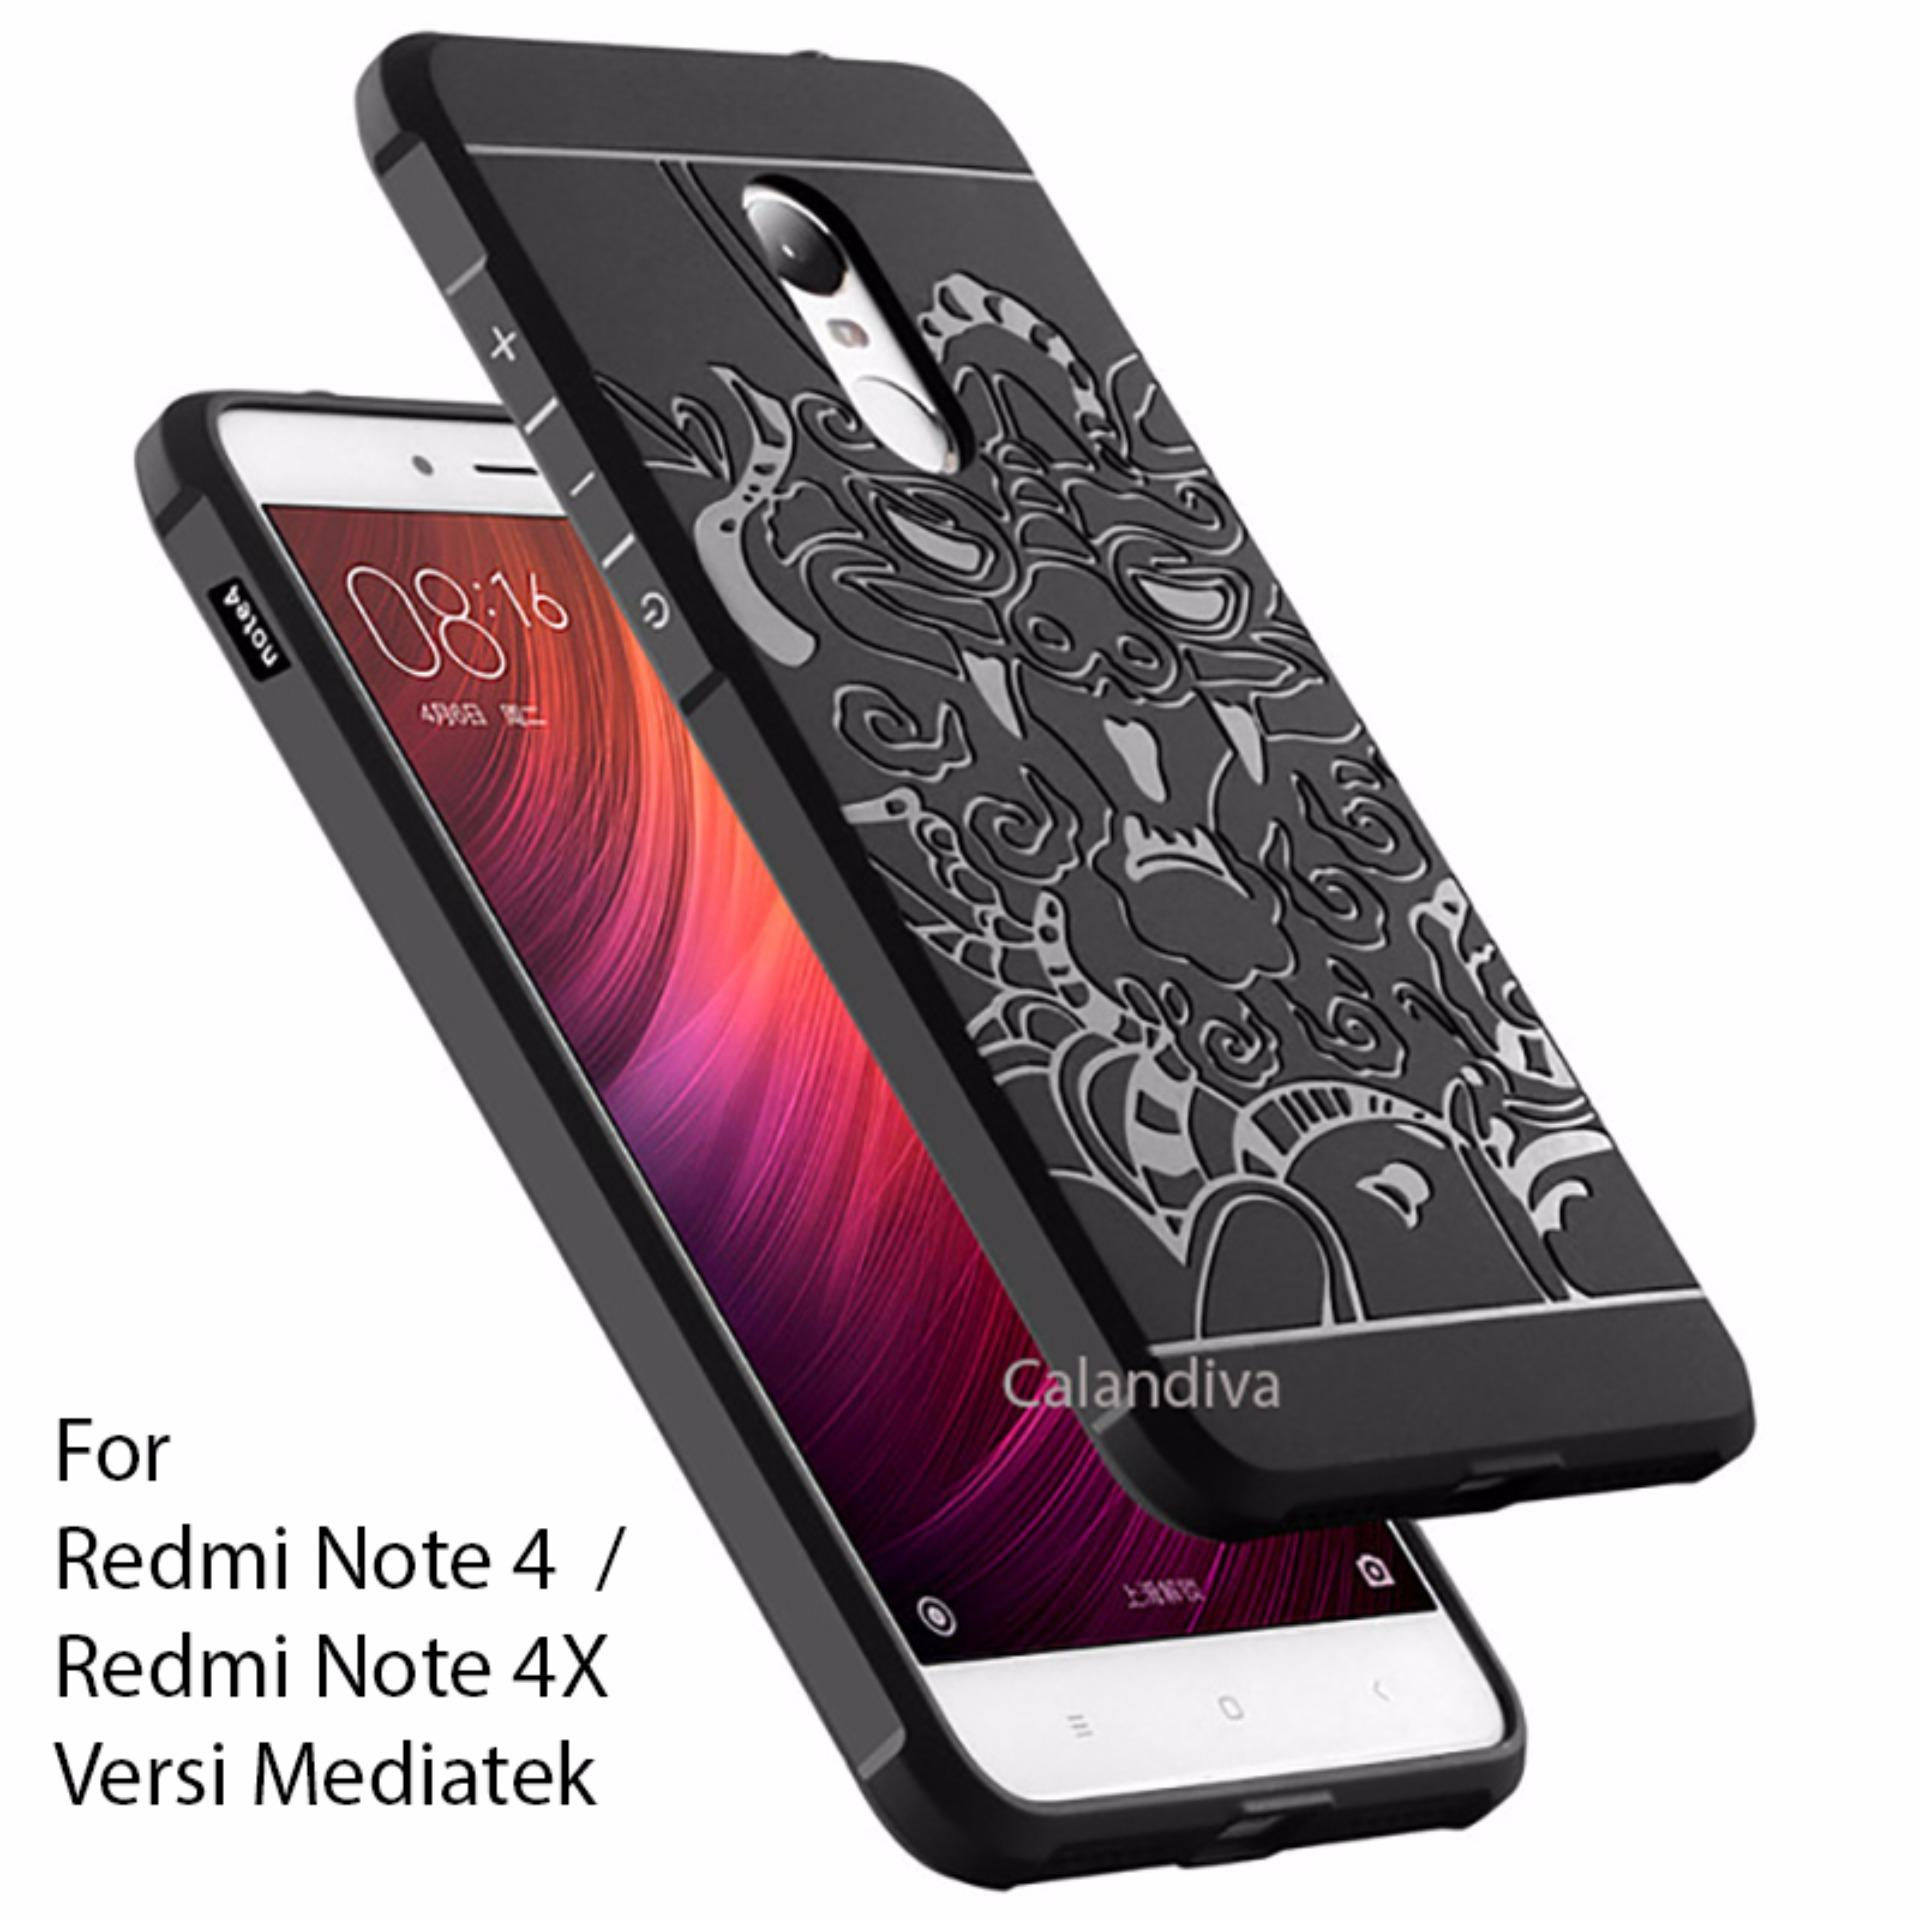 ... Calandiva Dragon Shockproof Hybrid Case for Xiaomi Redmi Note 4 Mediatek Redmi Note 4x Mediatek Hitam